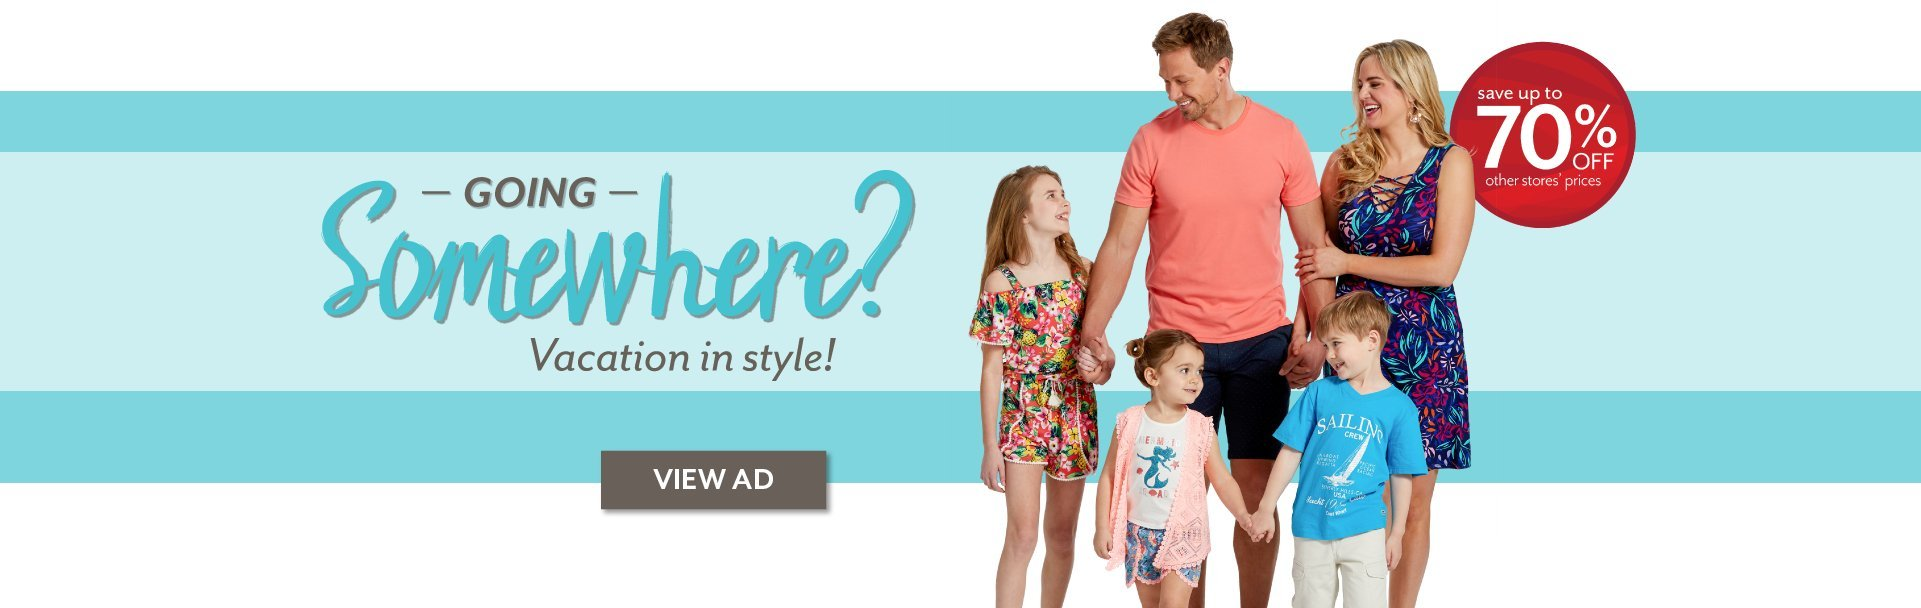 Shop the latest trends in Baby and Kids at Bealls Outlet